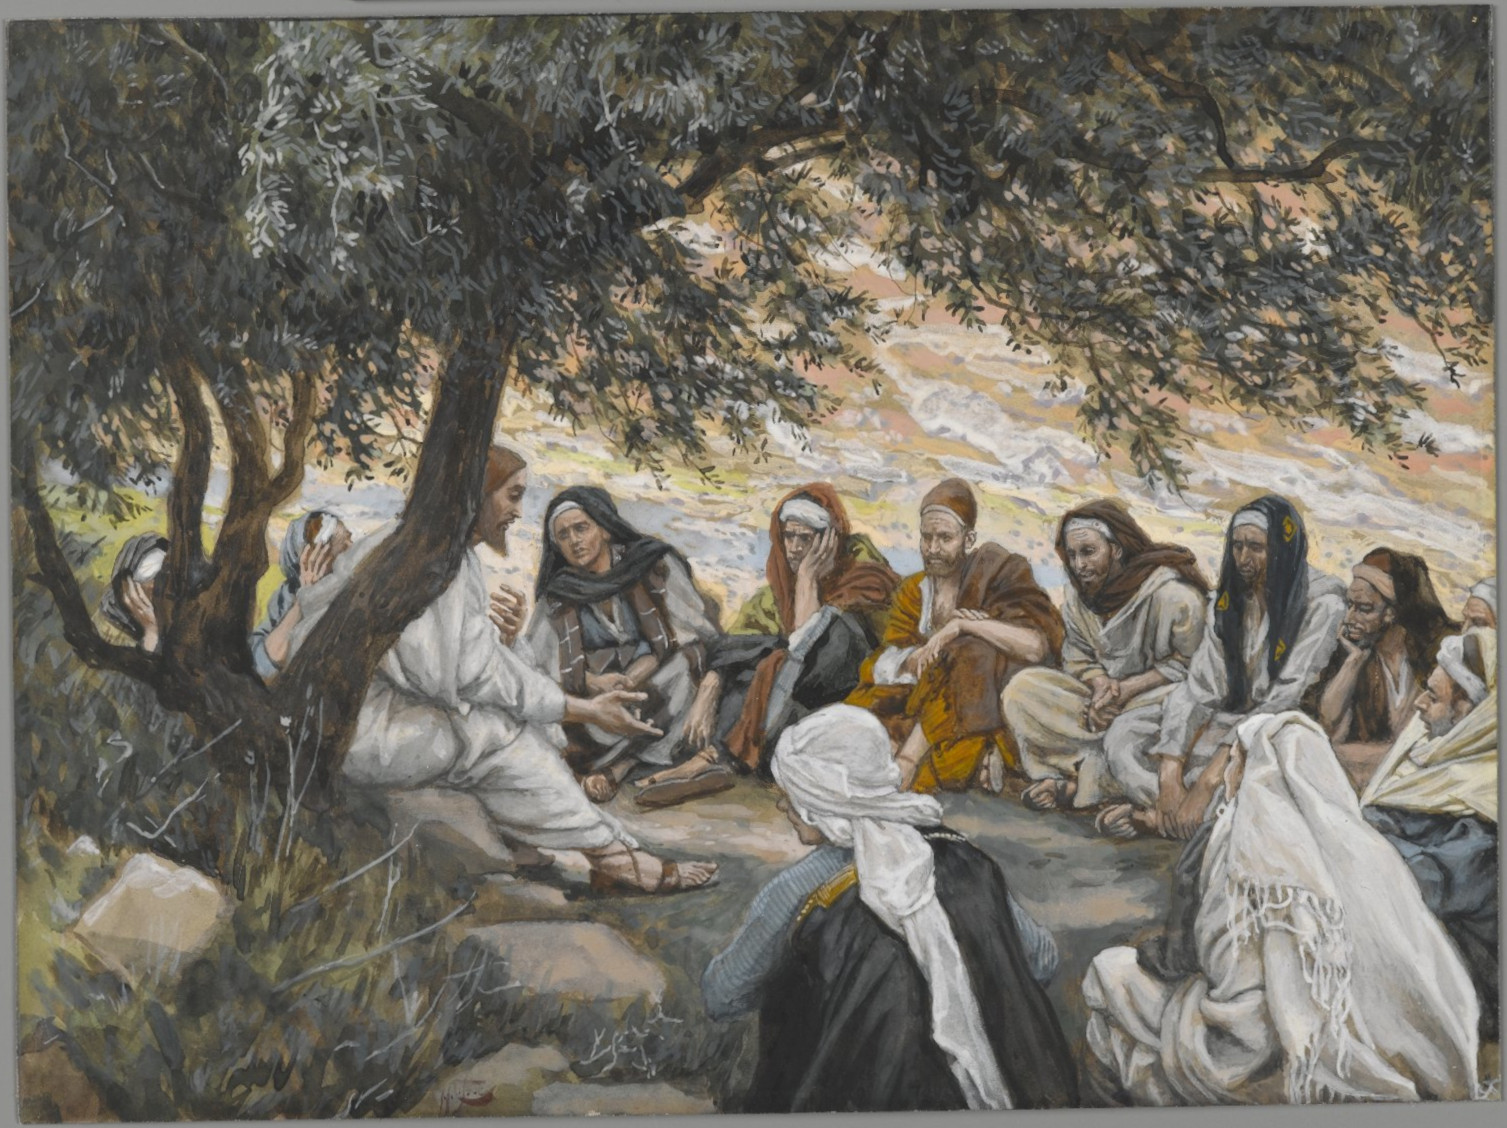 File:Brooklyn Museum - The Exhortation to the Apostles (Recommandation aux apôtres) - James Tissot.jpg